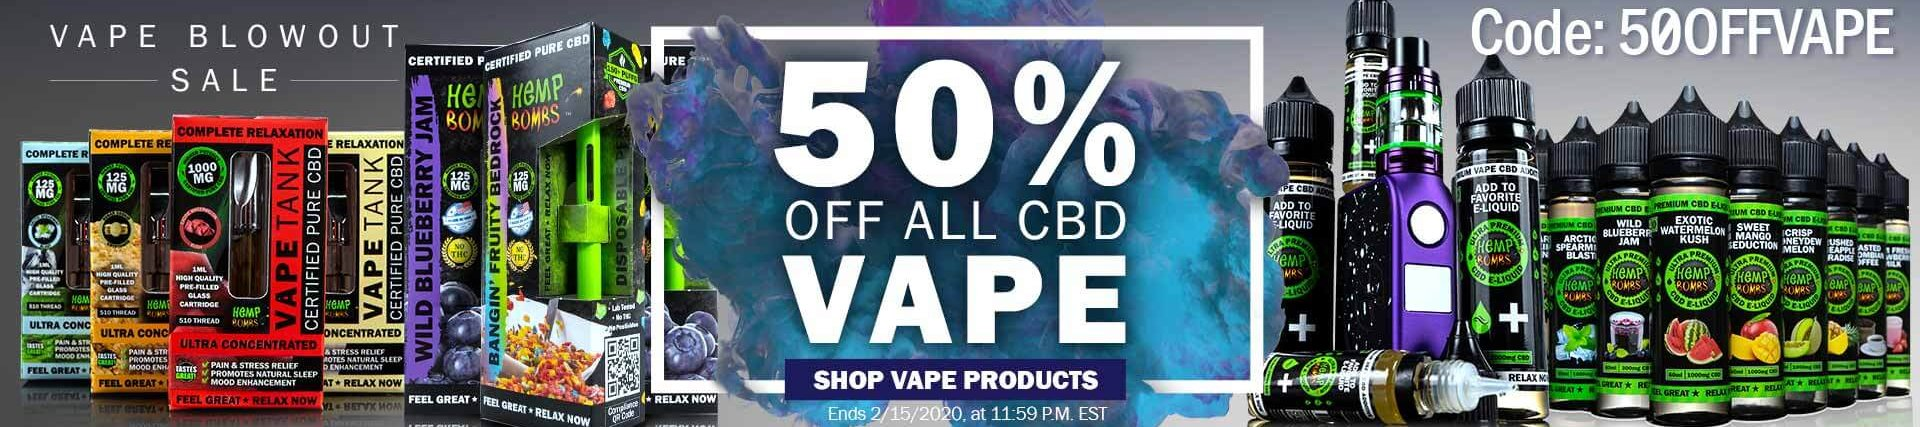 CBD Vape Products 50% Off Code: 50OFFVAPE